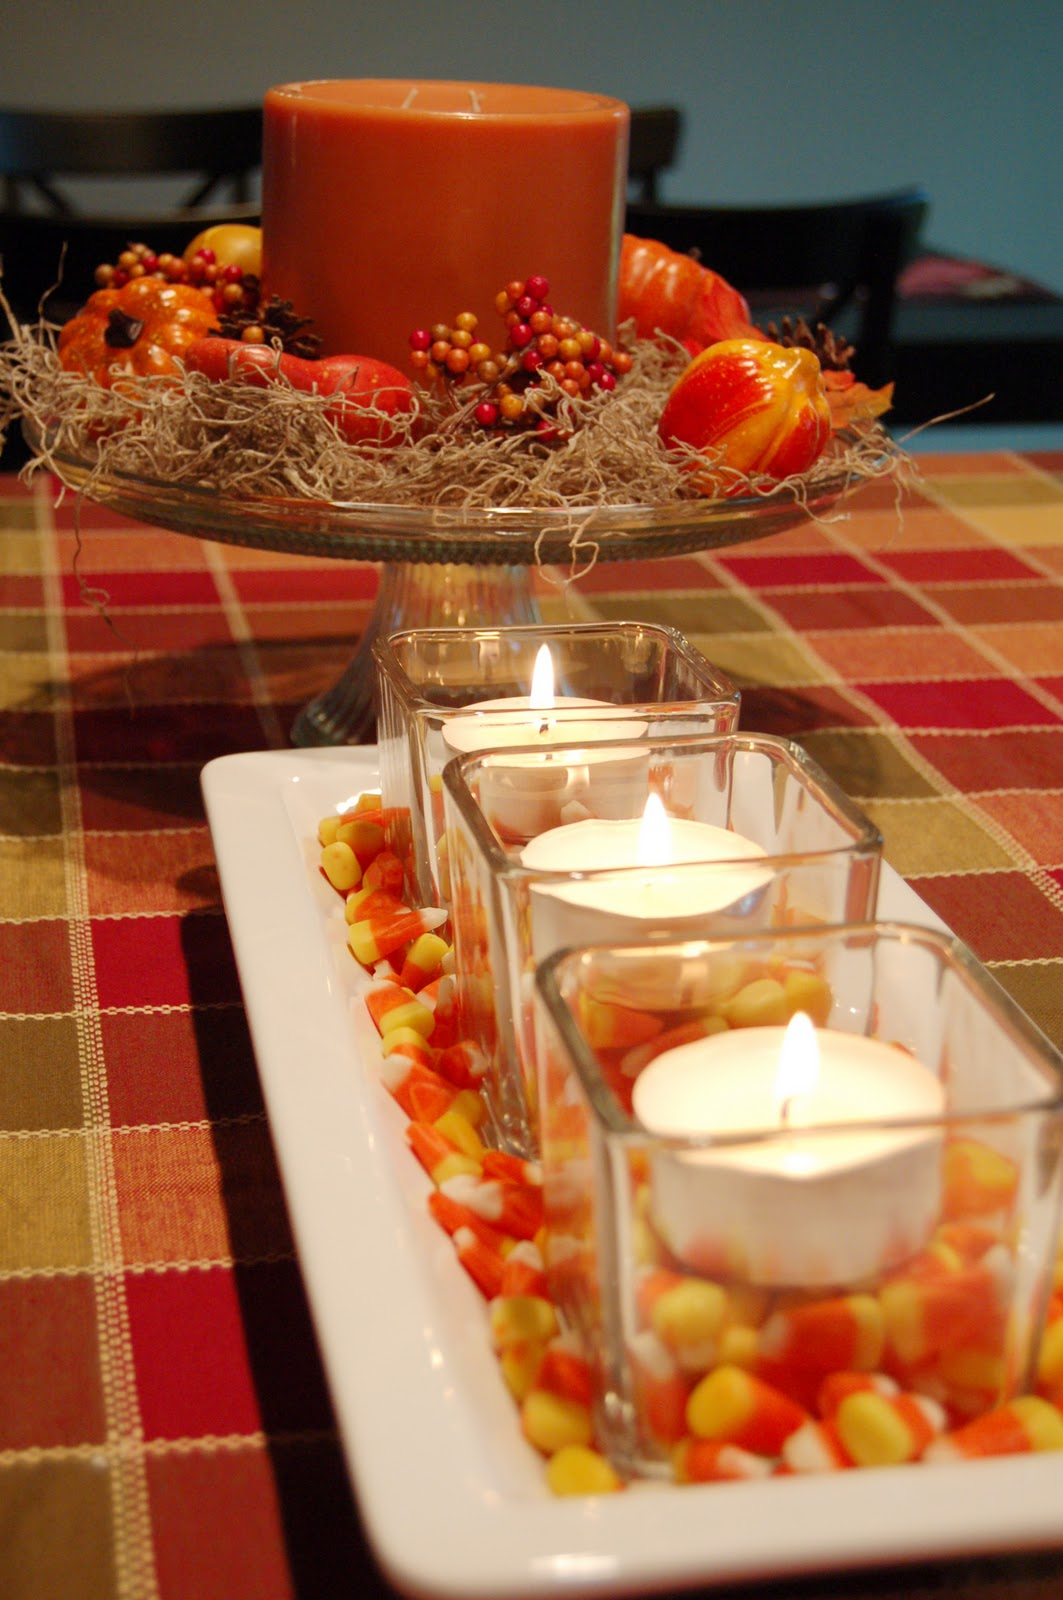 Best Diy Fall Centerpiece Projects This Month